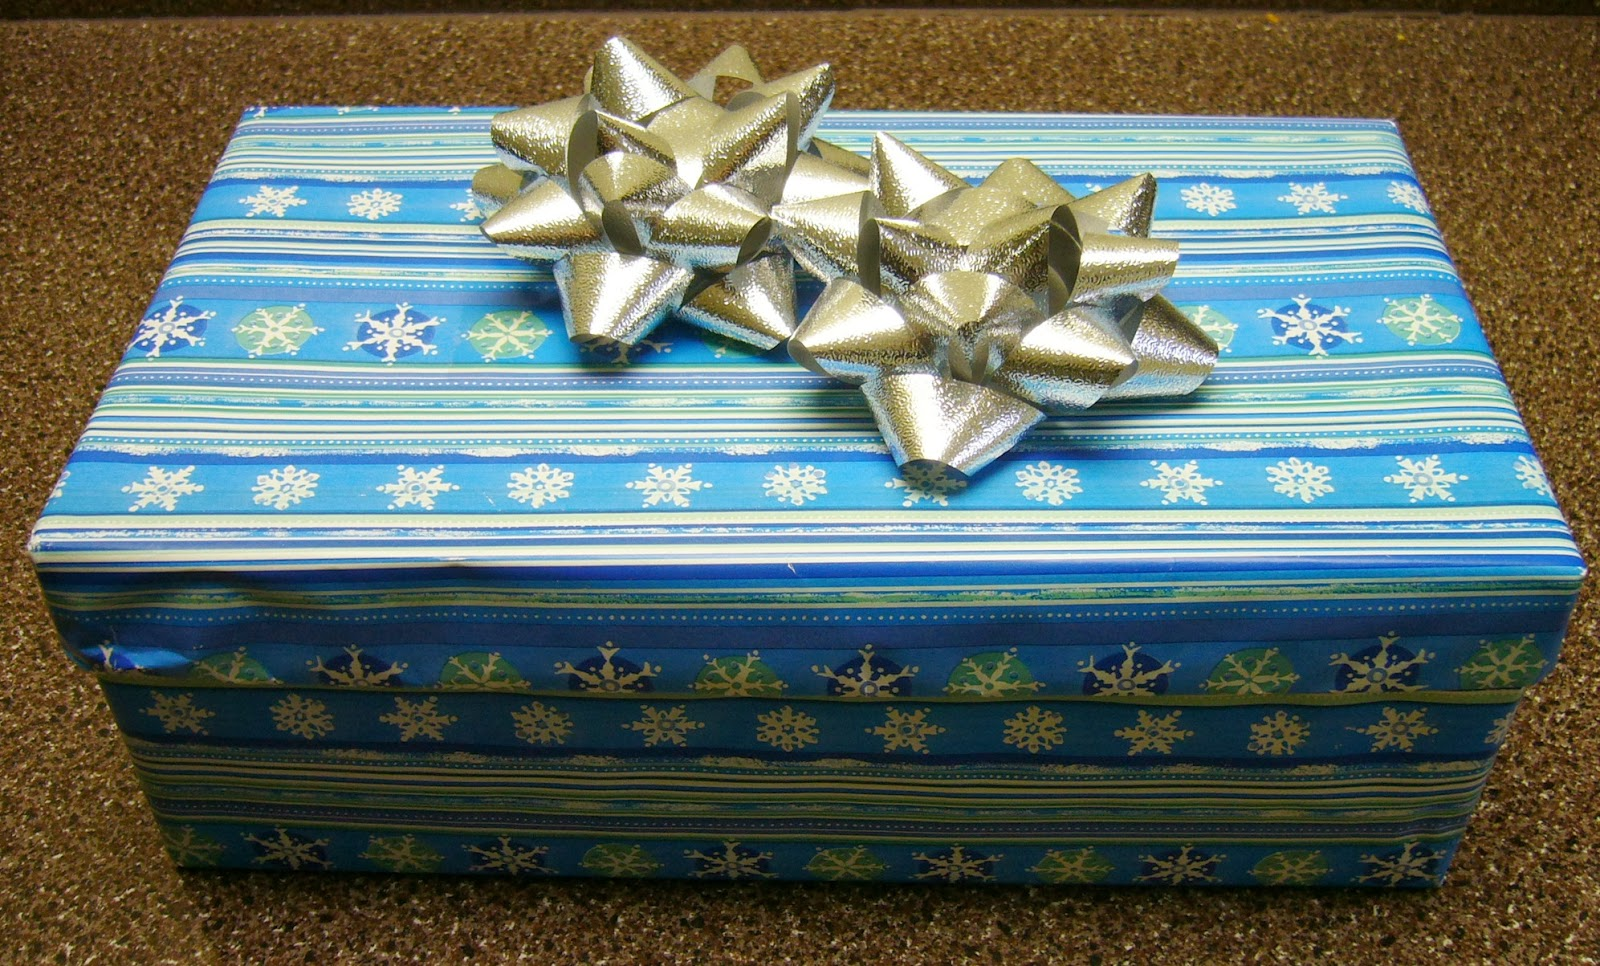 Simply Shoeboxes: Upcycling Christmas For Operation